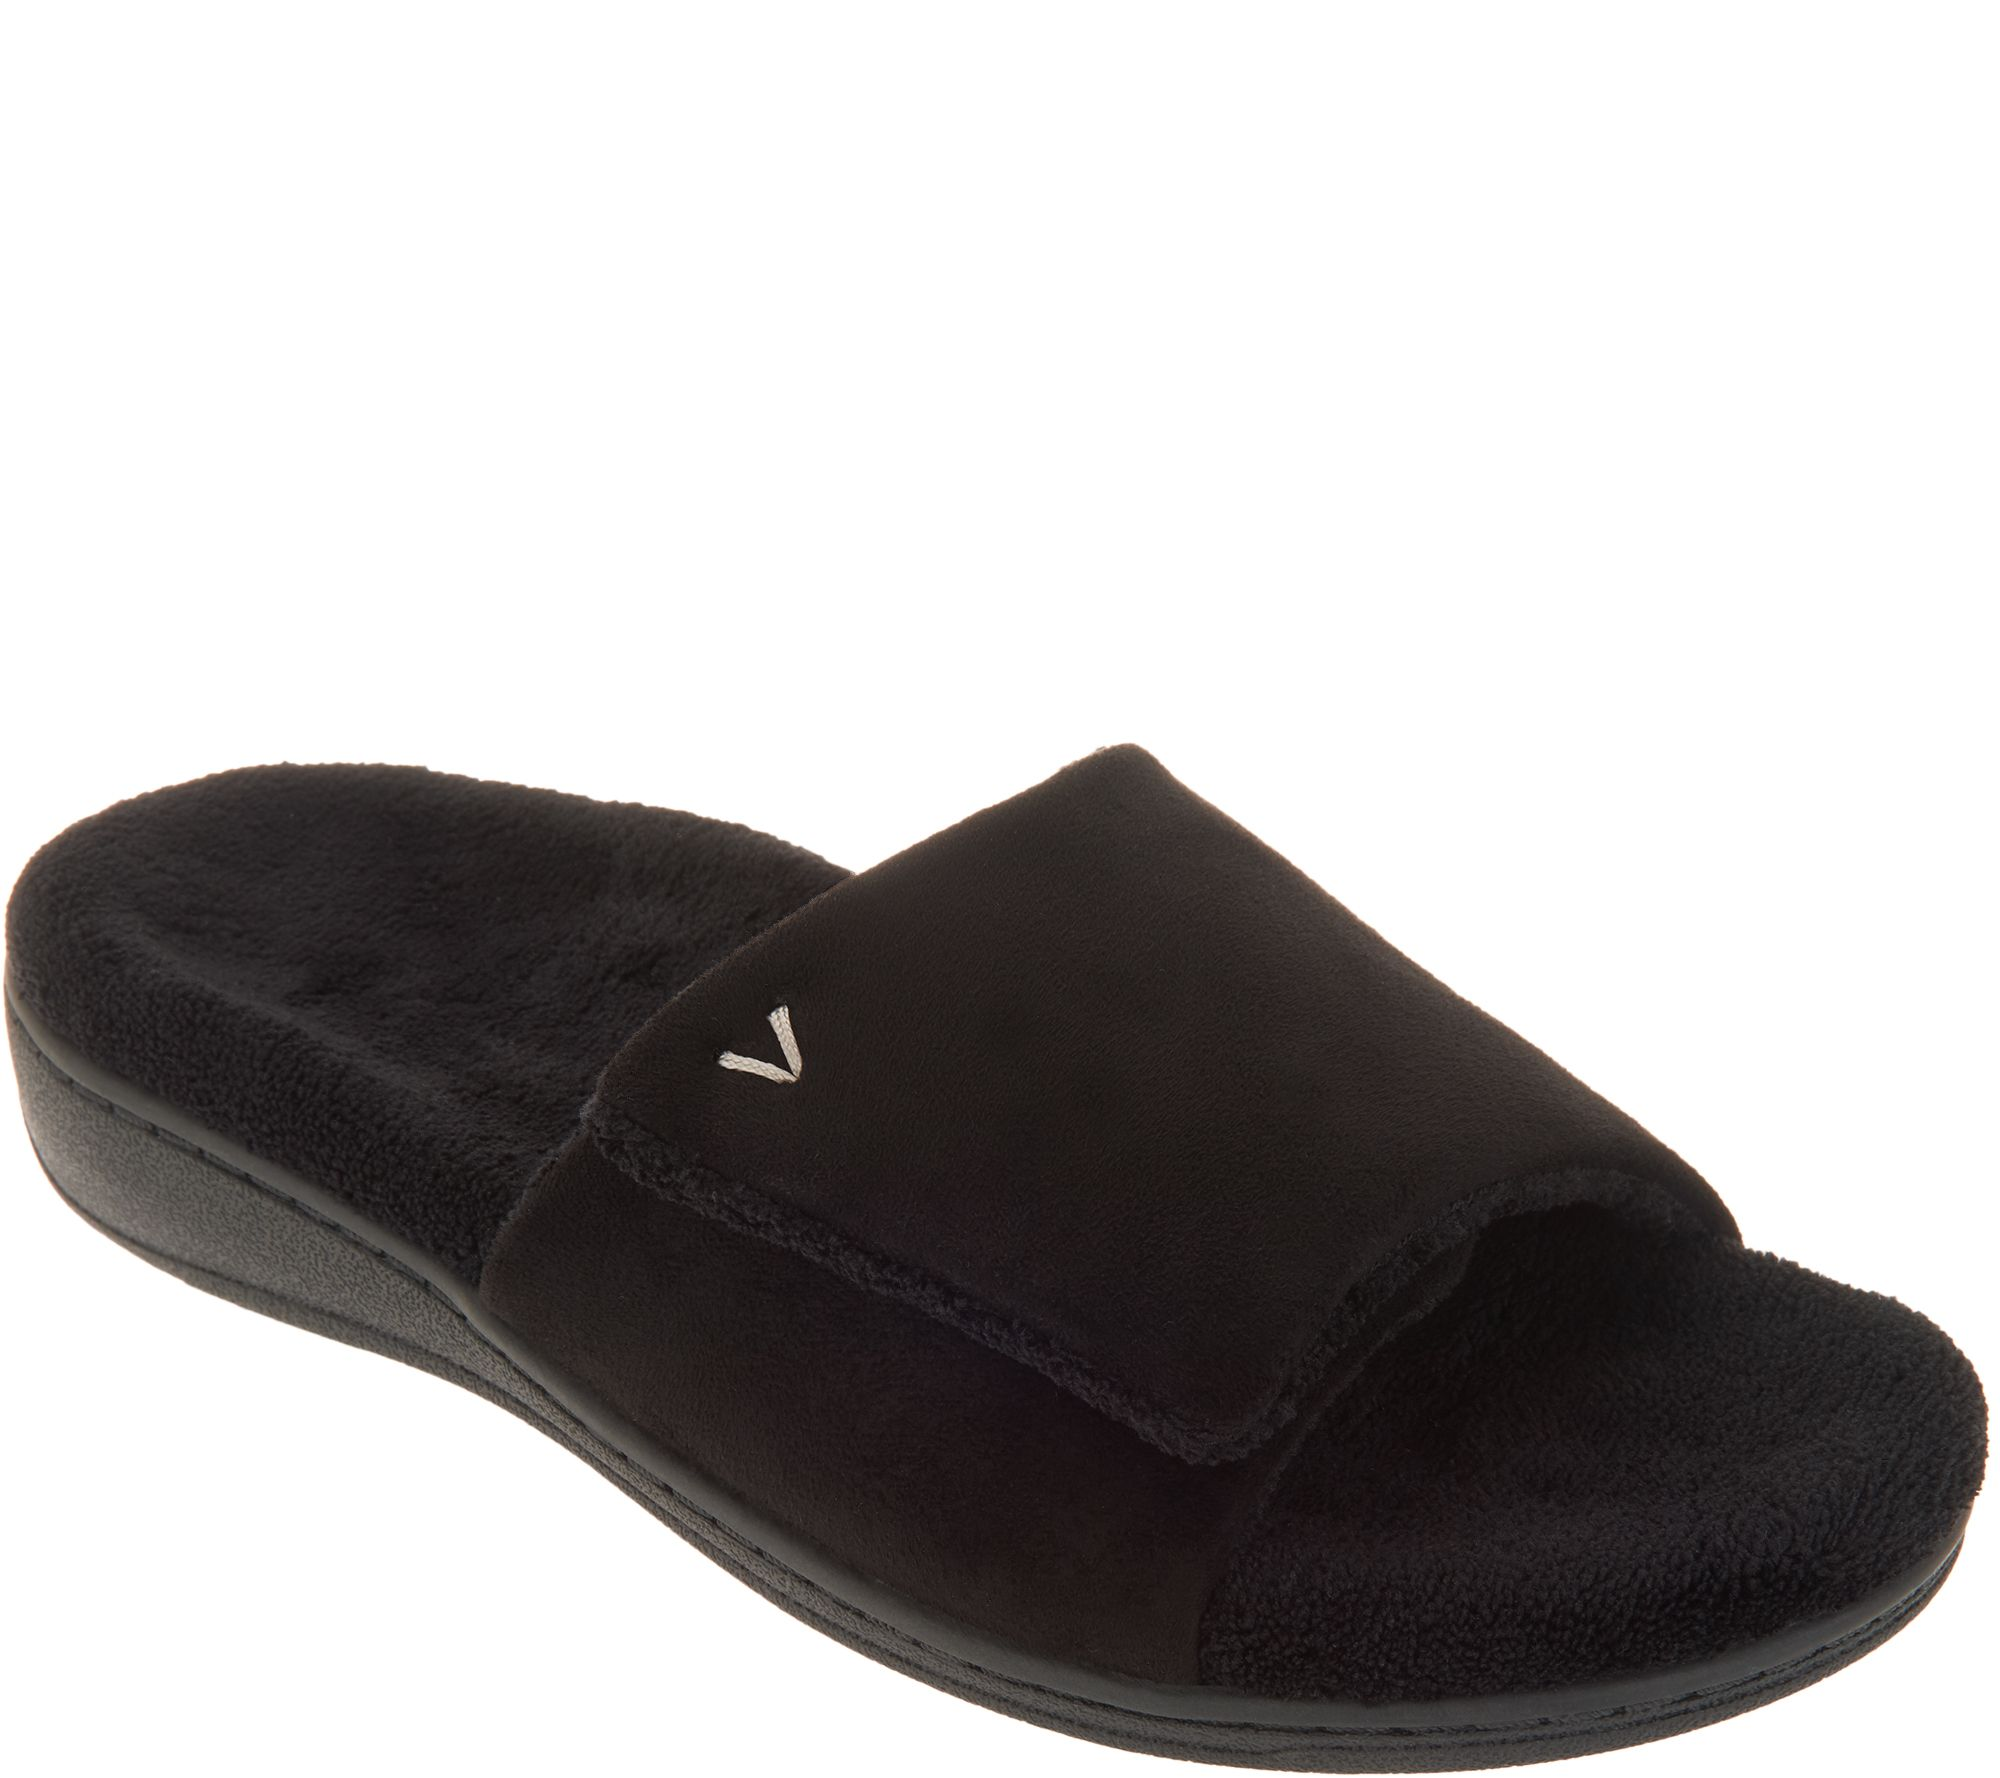 25451dc2851a Vionic Adjustable Strap Slippers - Darby - Page 1 — QVC.com